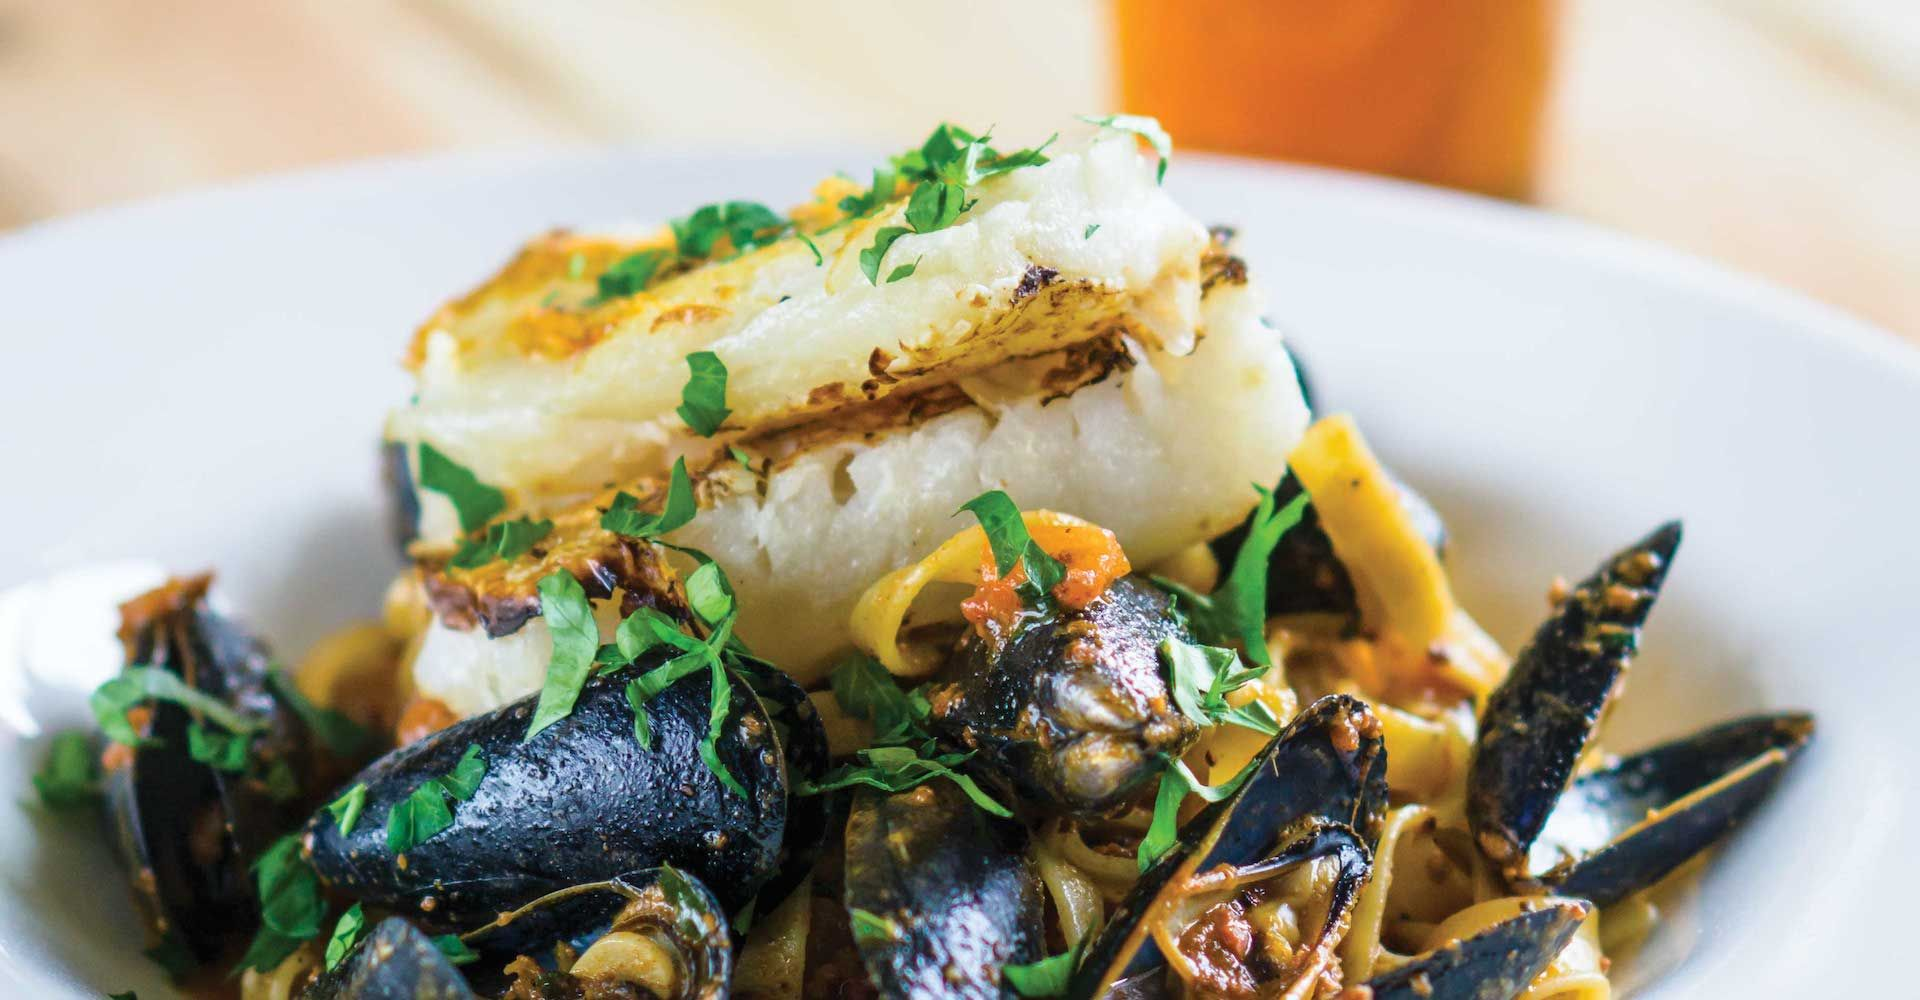 Seared Cod with Mussels and Beer Butter Sauce Recipe